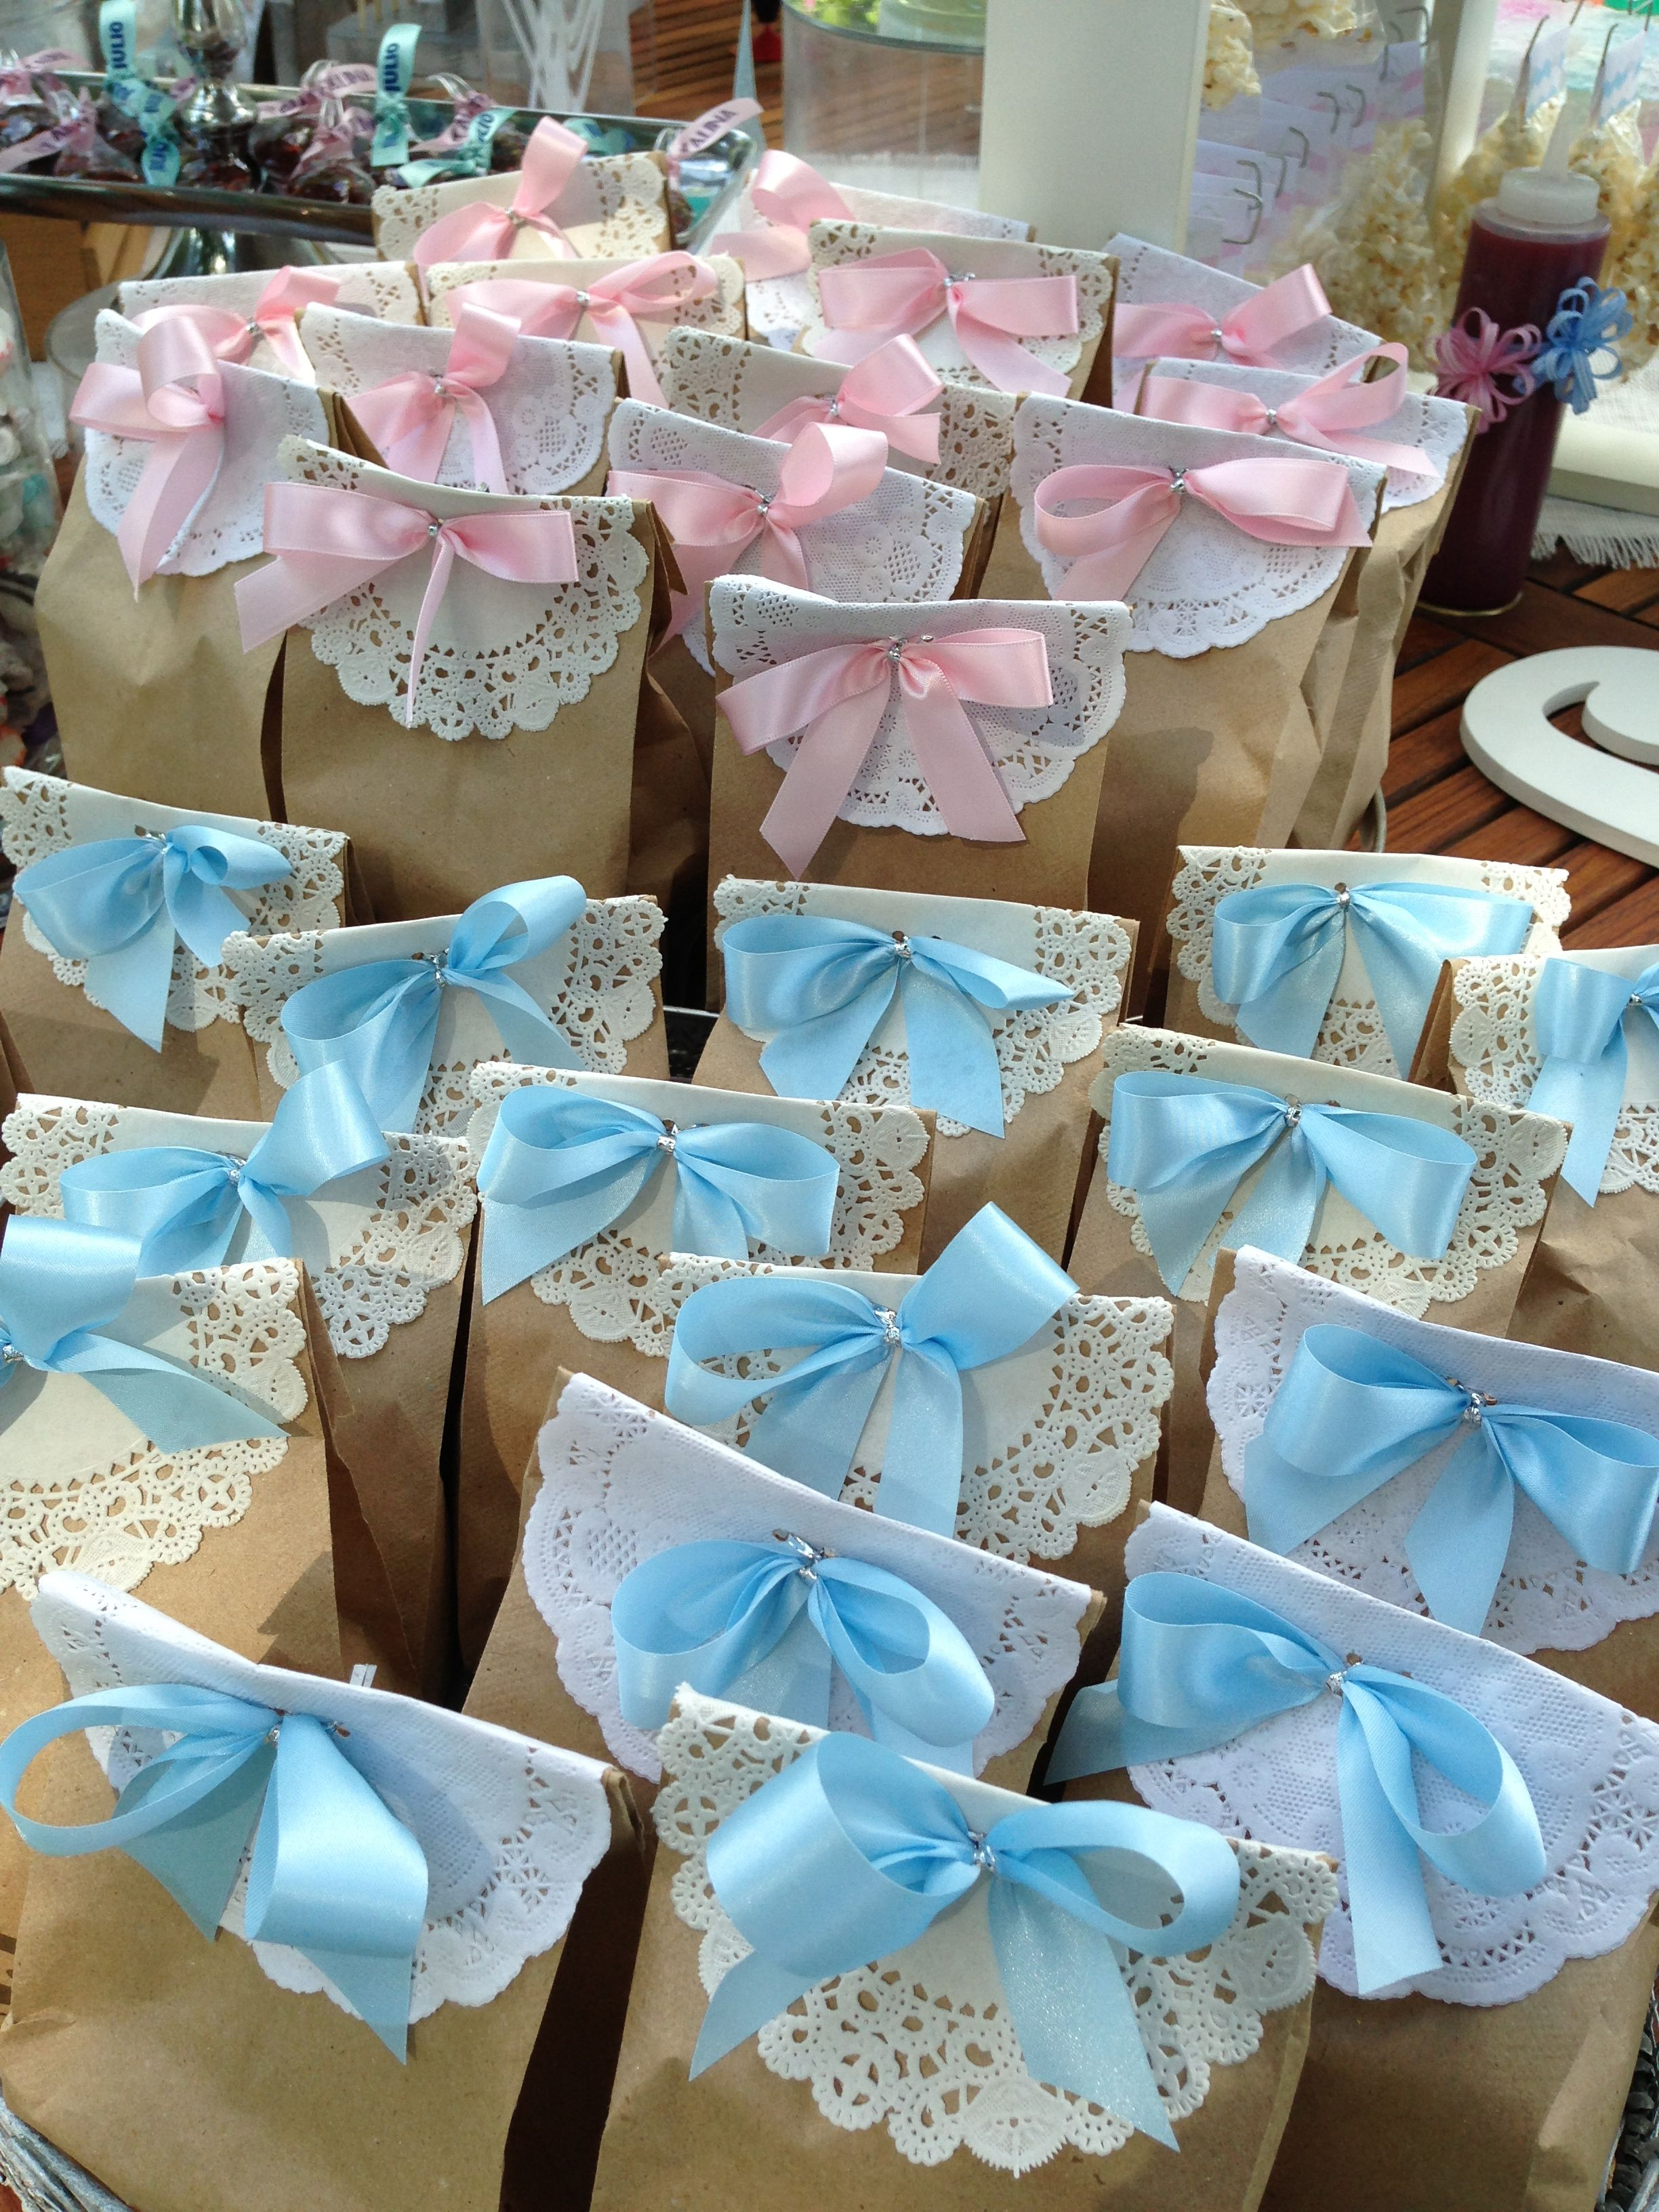 raffle pin gifts using baby inexpensive these prize shower for diaper the